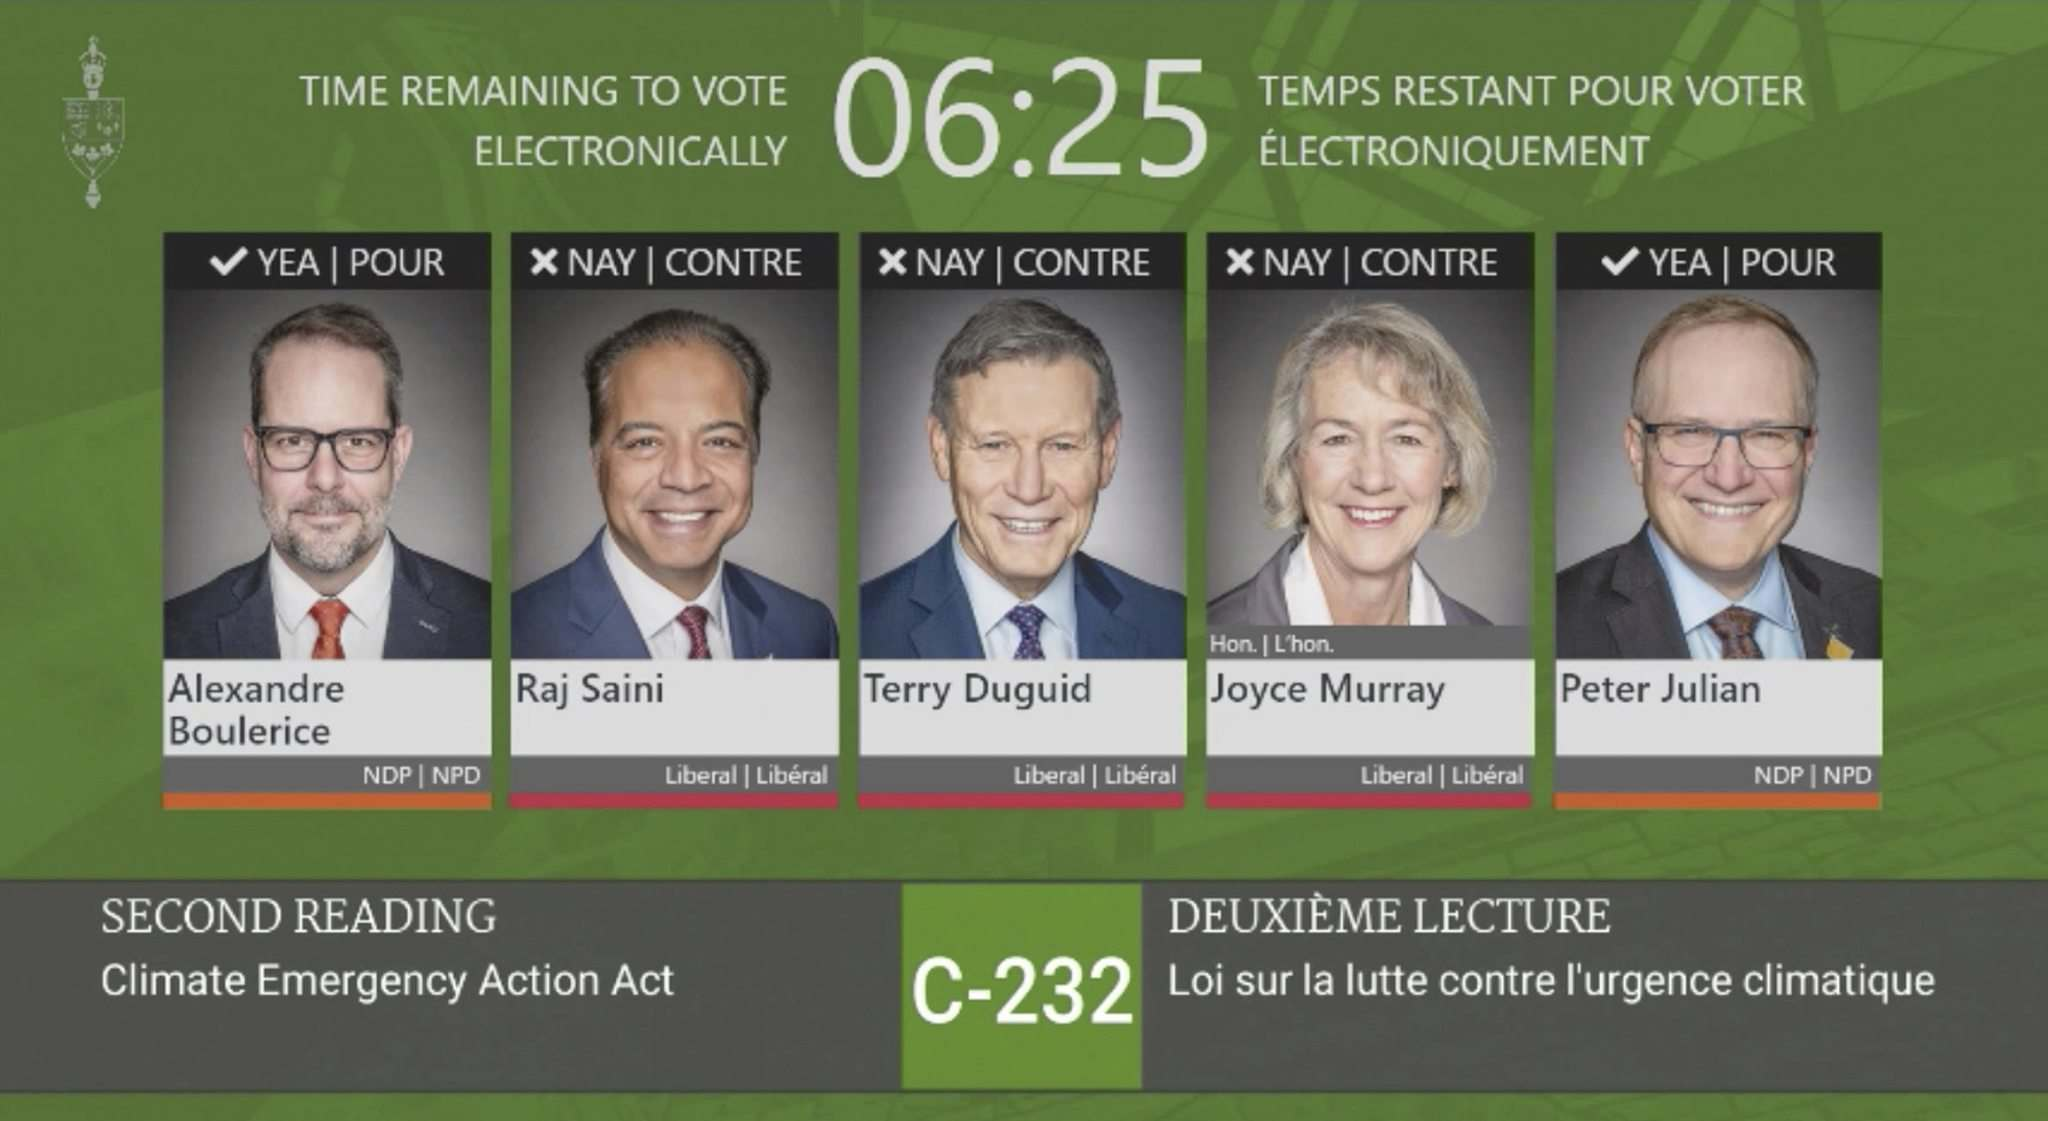 The House of Commons' new voting app show how MPs sided on legislation as votes come in, instead of requiring each of them to appear on Zoom screen and voice their vote. That's in addition to each MP rising in the House, which fewer are doing due to COVID-19 restrictions.</p>